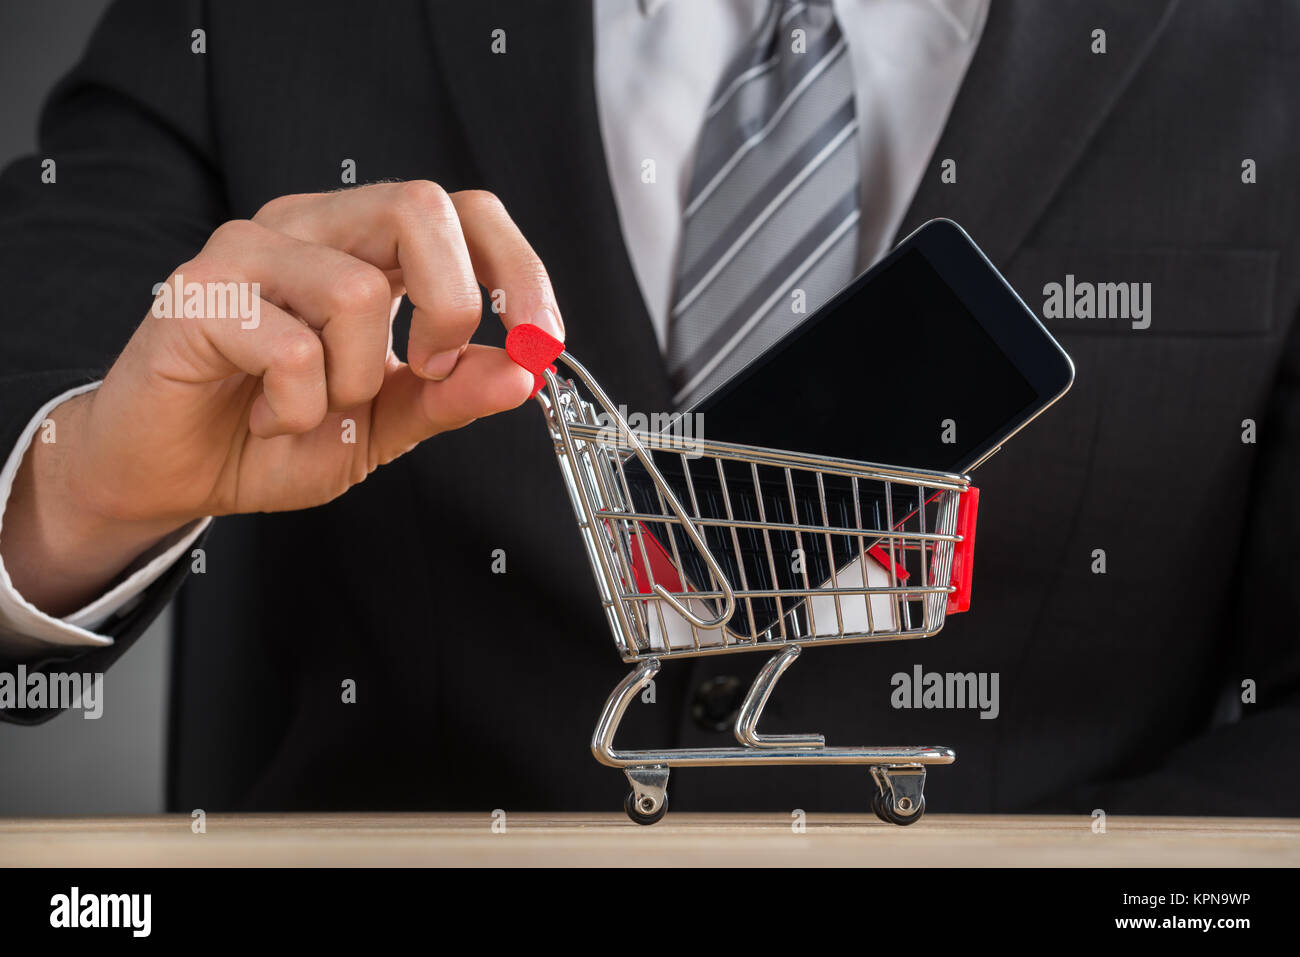 Businessman Holding Shopping Trolley With Mobile Phone - Stock Image